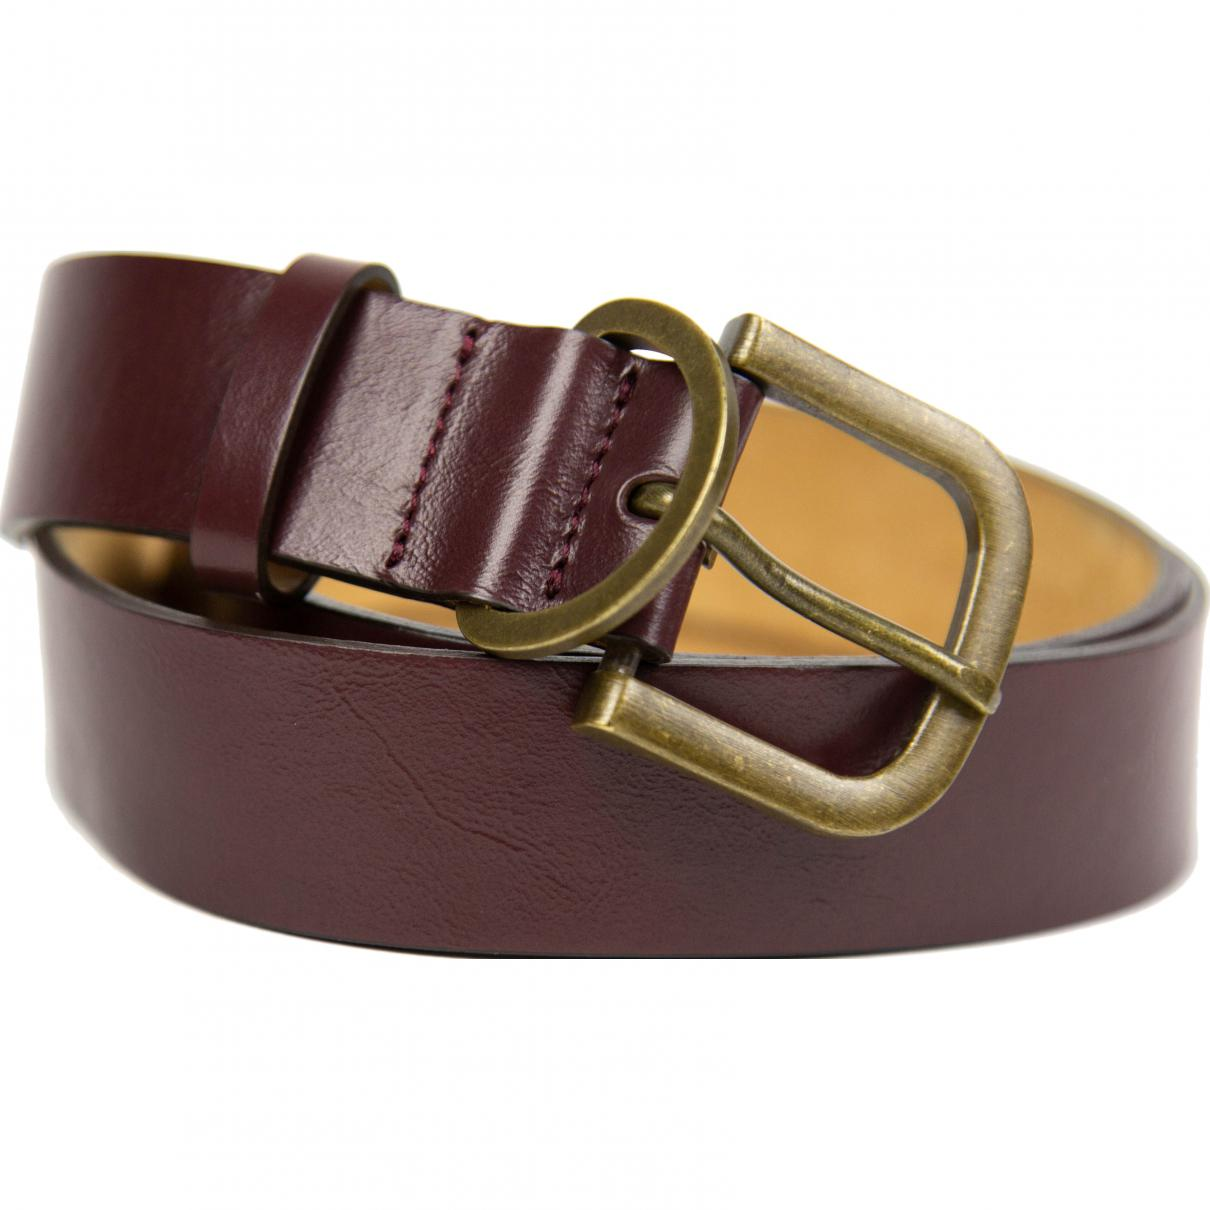 c1408423364 Gallery. Previously sold at  Vestiaire Collective · Women s Leather Belts  ...